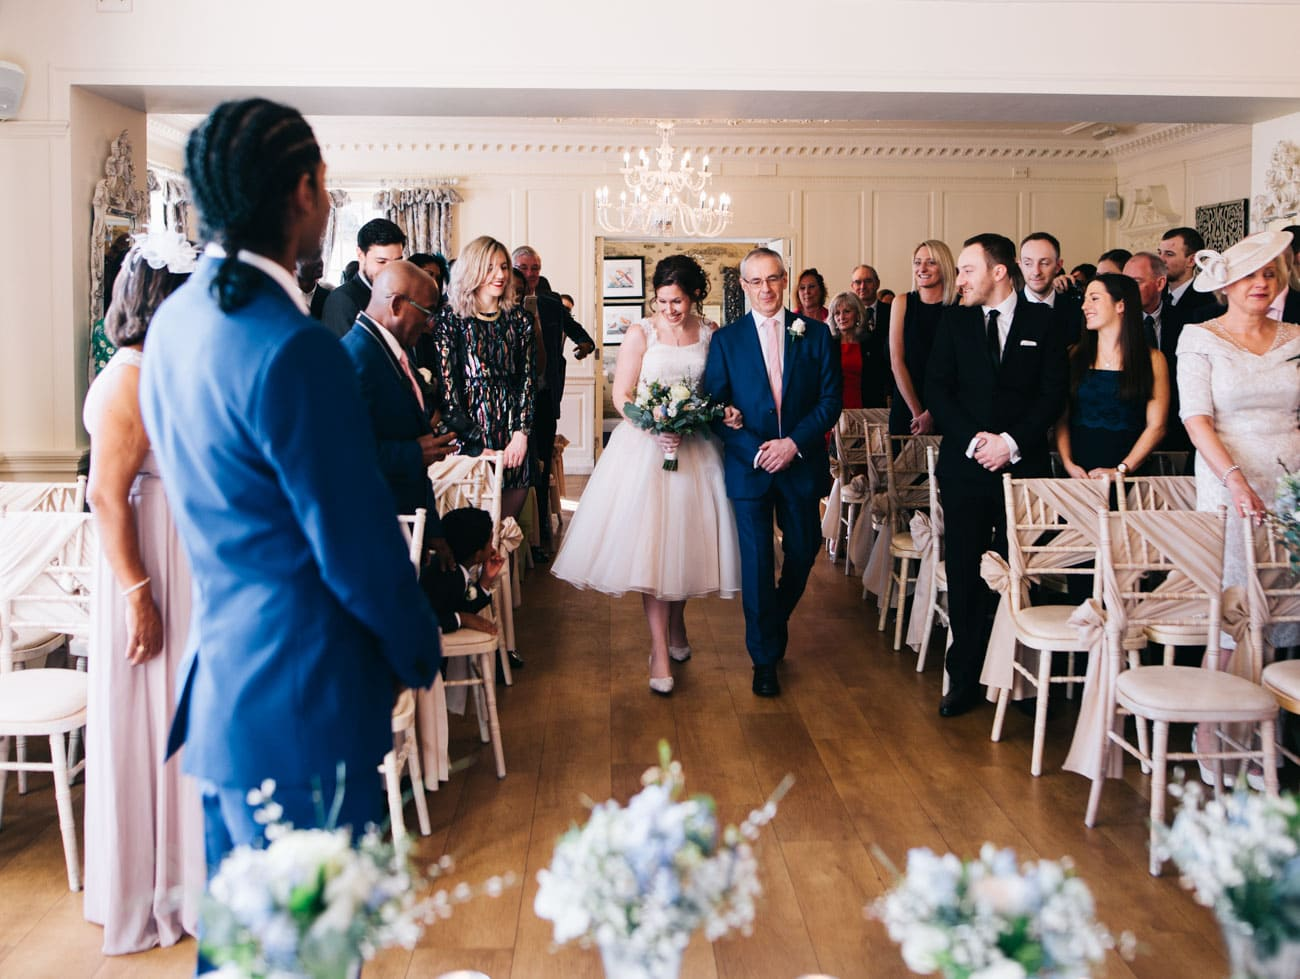 walking down the aisle of Eaves Hall